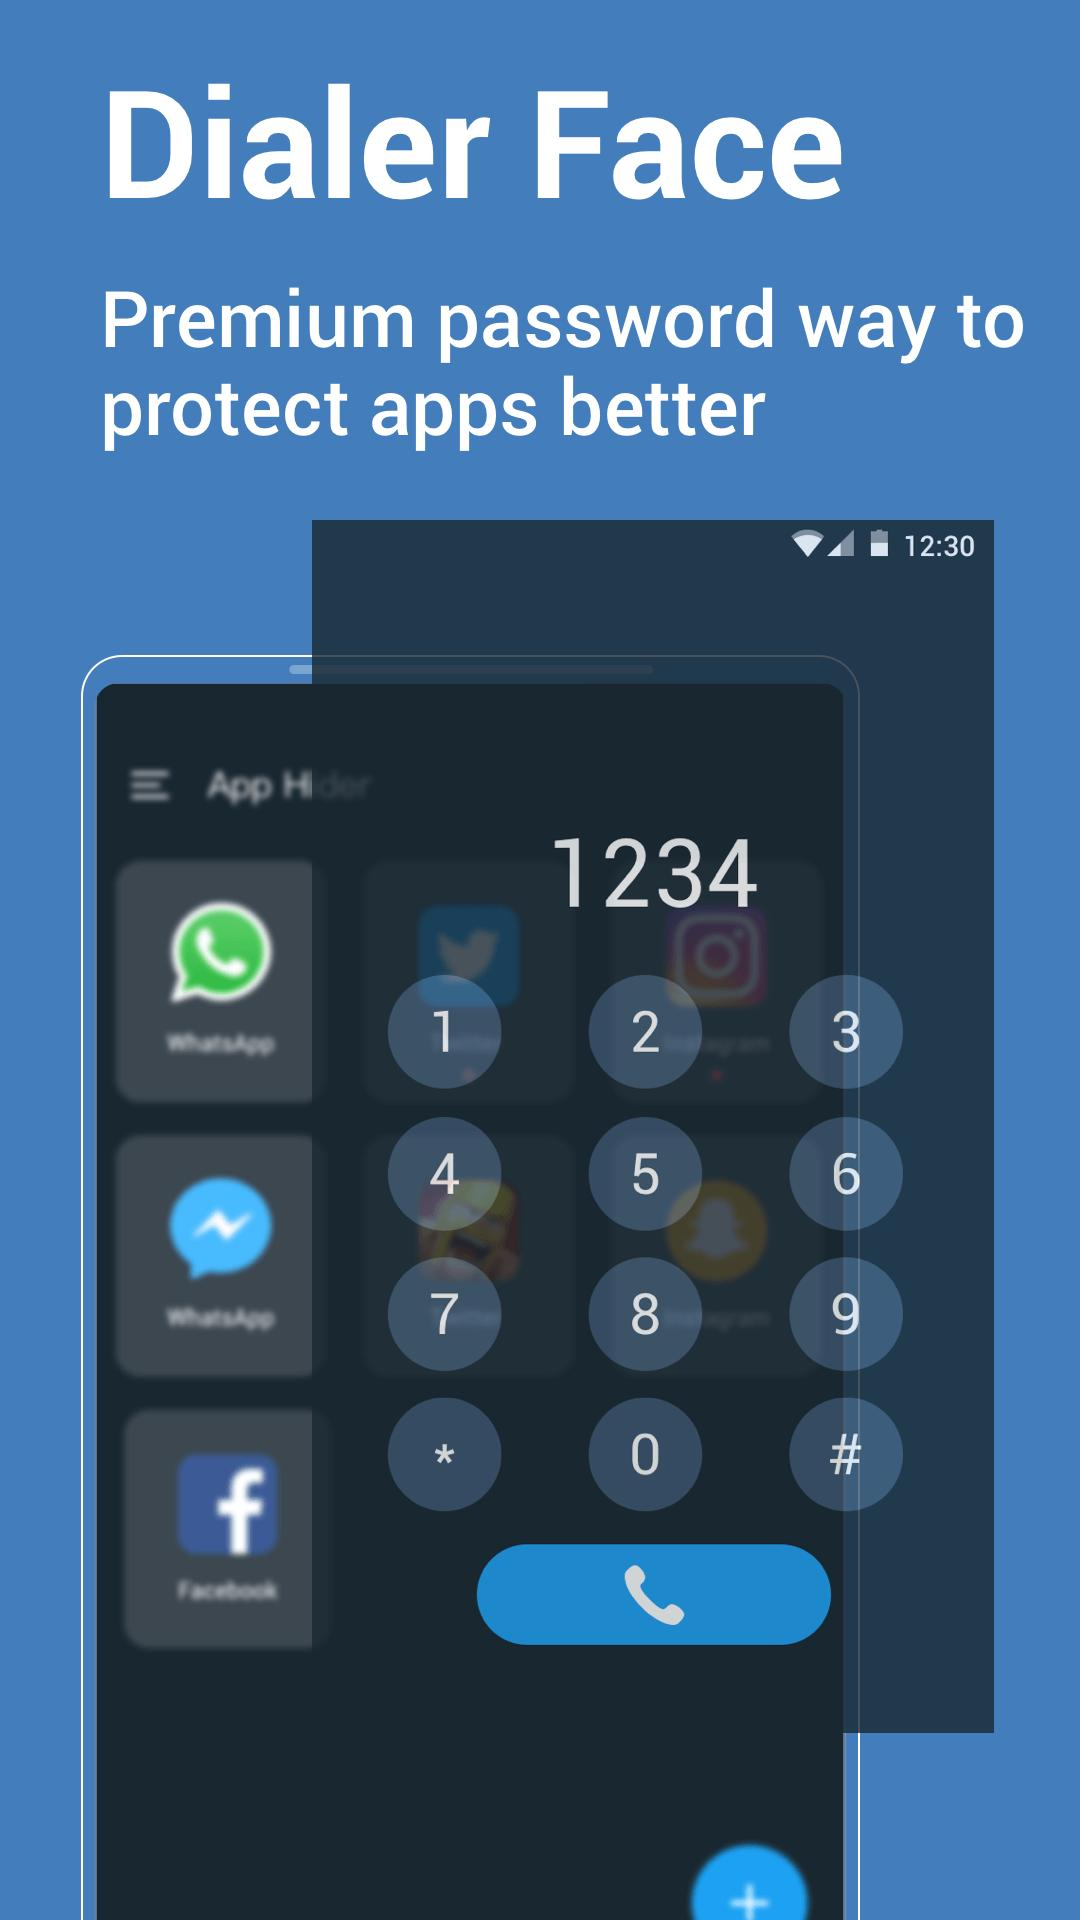 App Hider - Hide apps in hidden parallel space for Android - APK